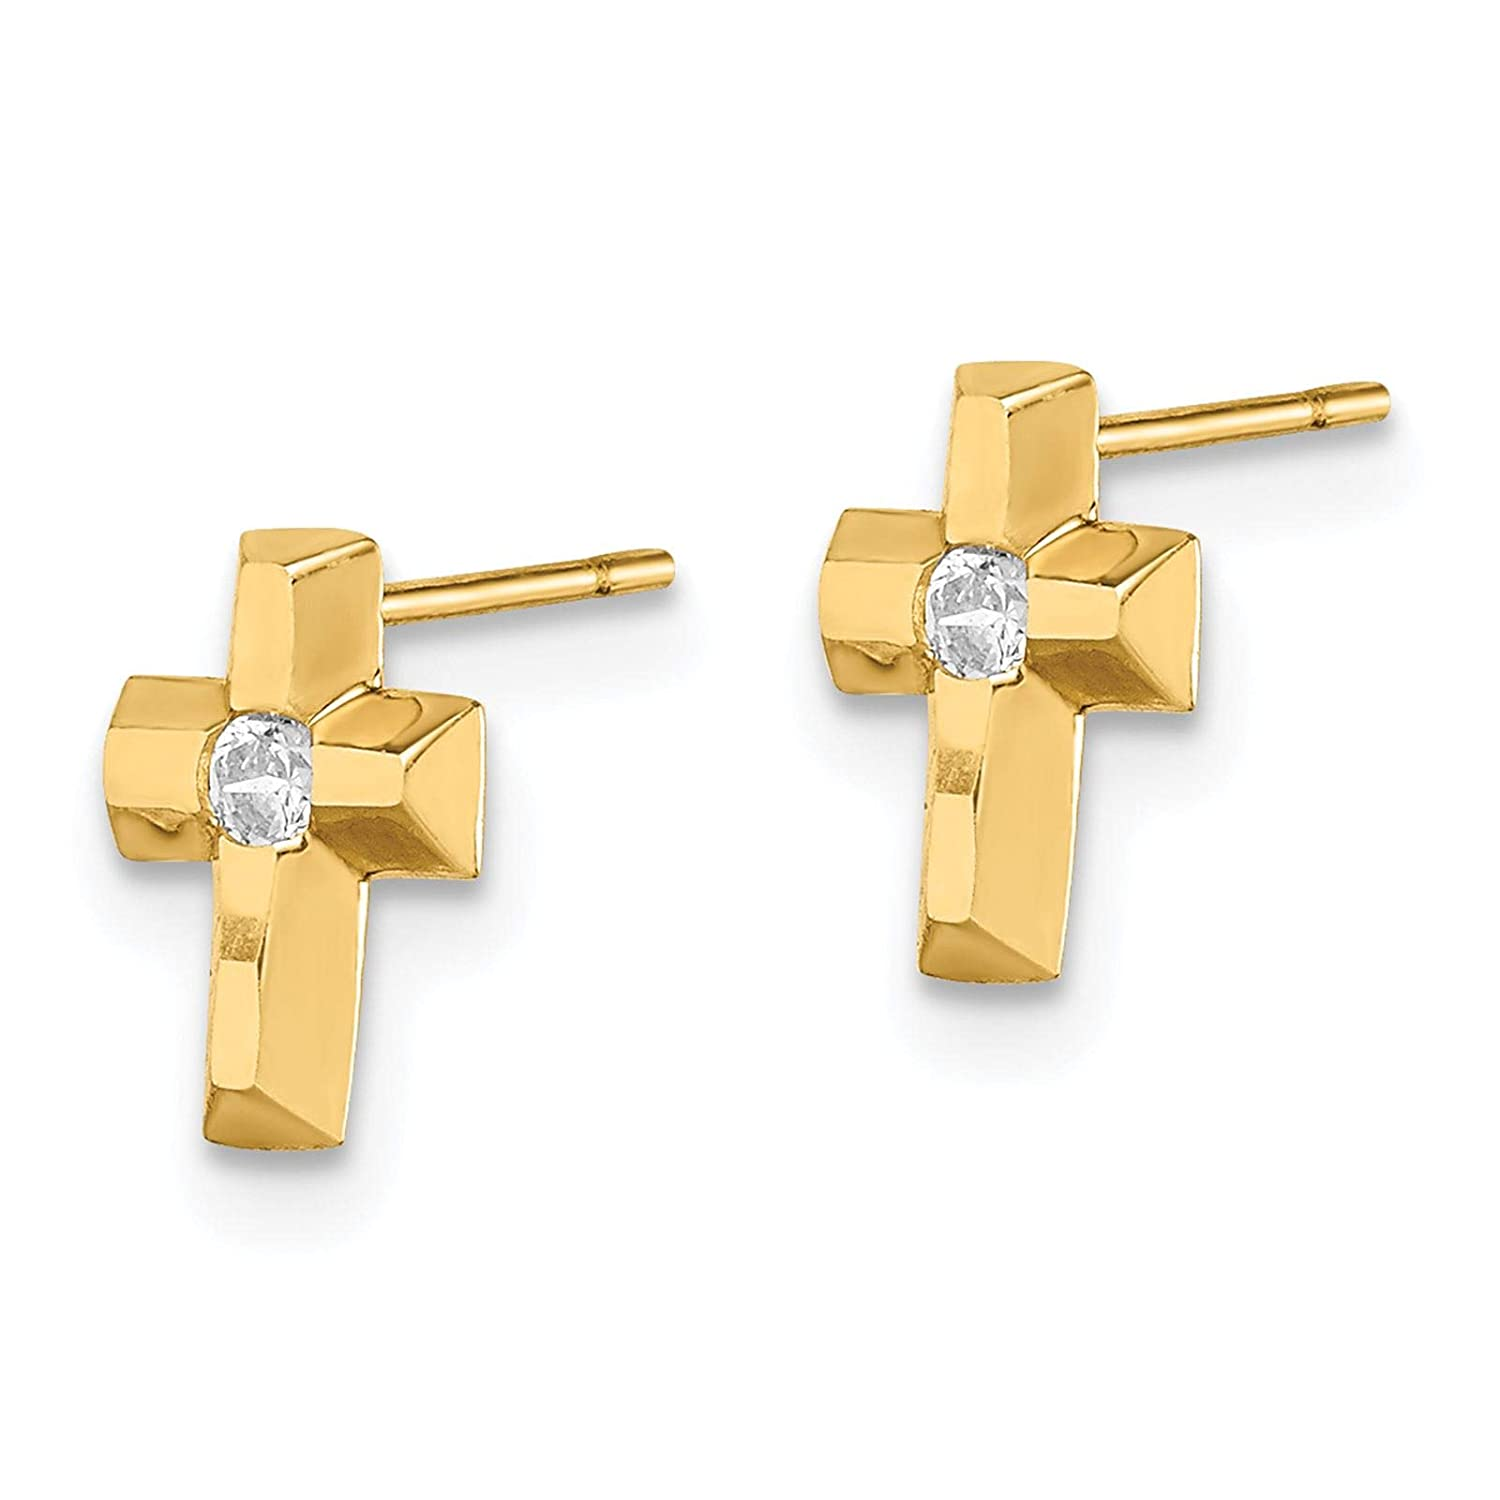 14k Yellow Gold Polished Cross w//CZ Post Earrings by Madi K